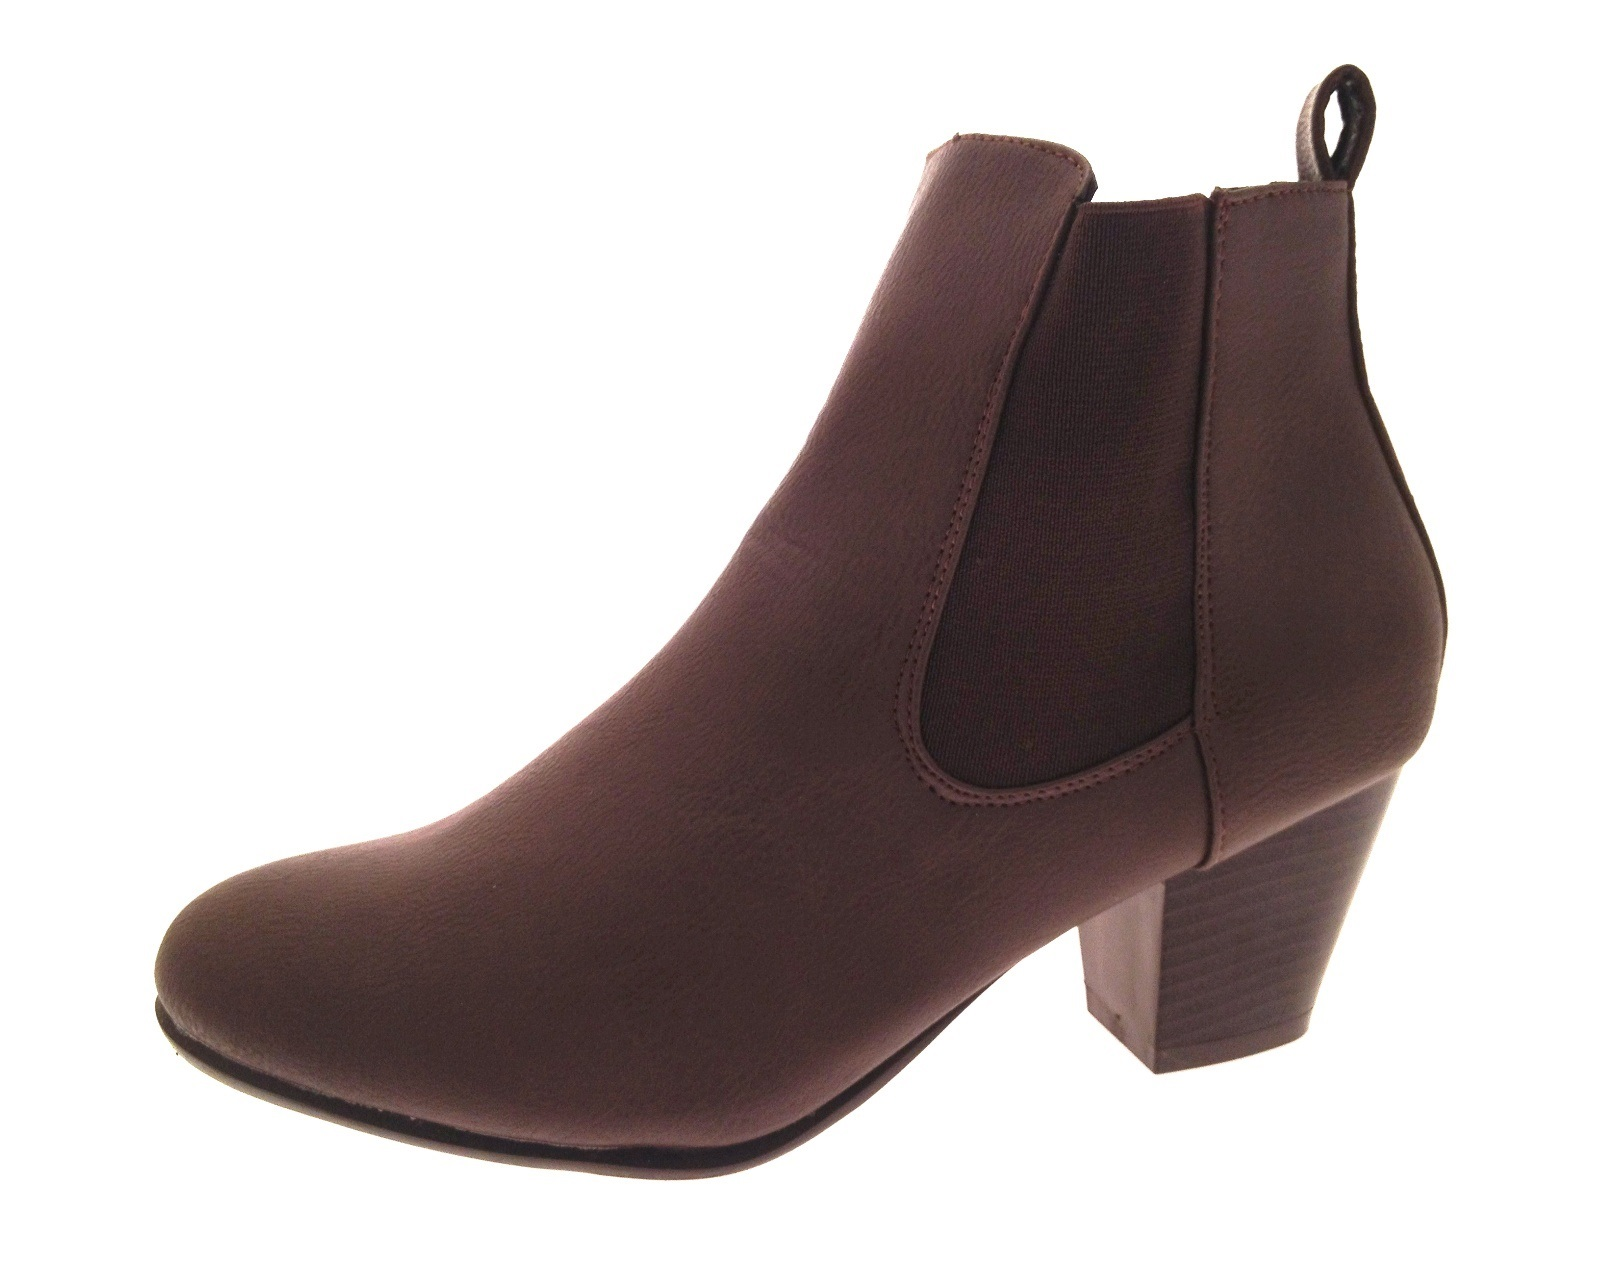 fd69aba5b2f98 Womens Chunky Block Heel Chelsea Ankle Boots Wide Fitting Comfort ...